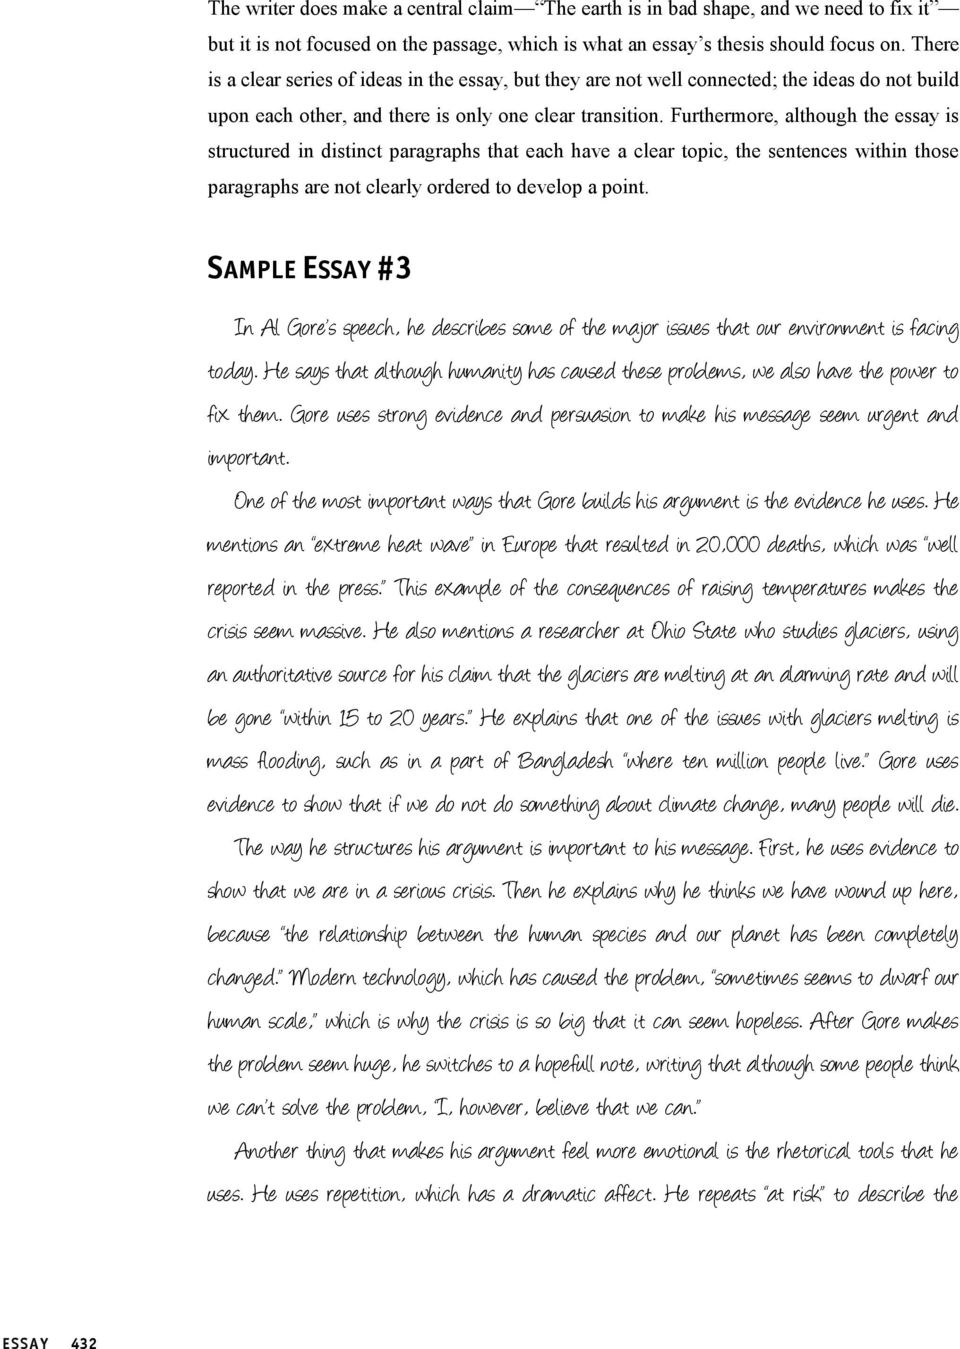 Sample Essays Part  Essay Prompt  Pdf Furthermore Although The Essay Is Structured In Distinct Paragraphs That  Each Have A Clear Topic